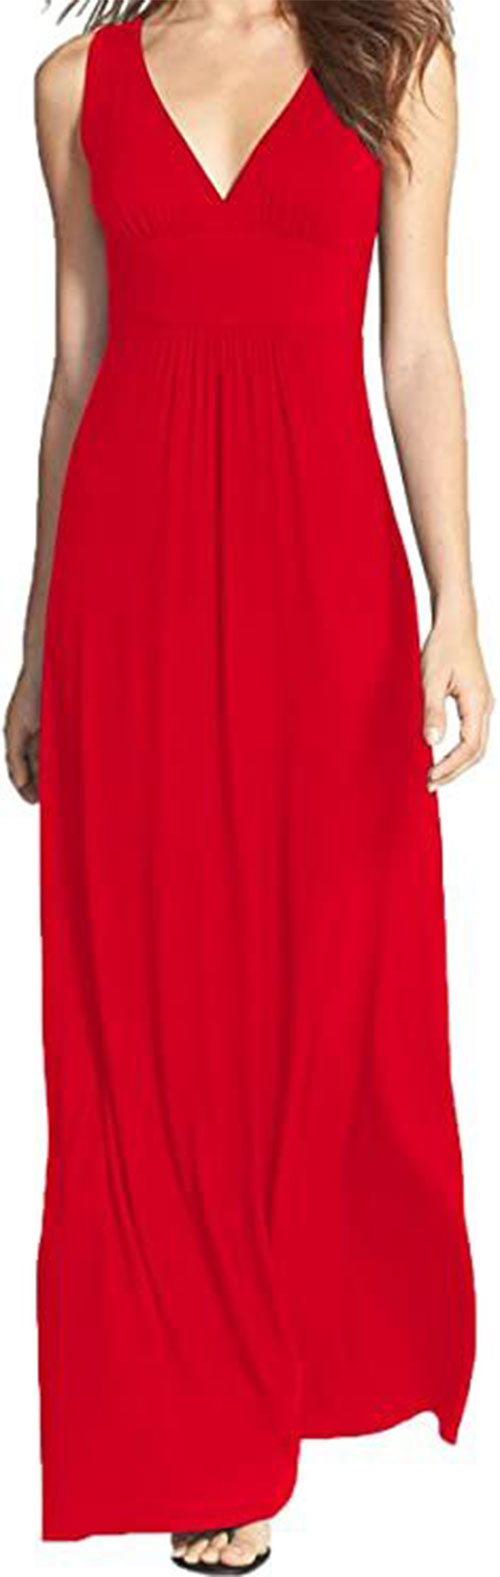 Valentine's Day-Dresses-Red-Fashion-Outfits-2021-11